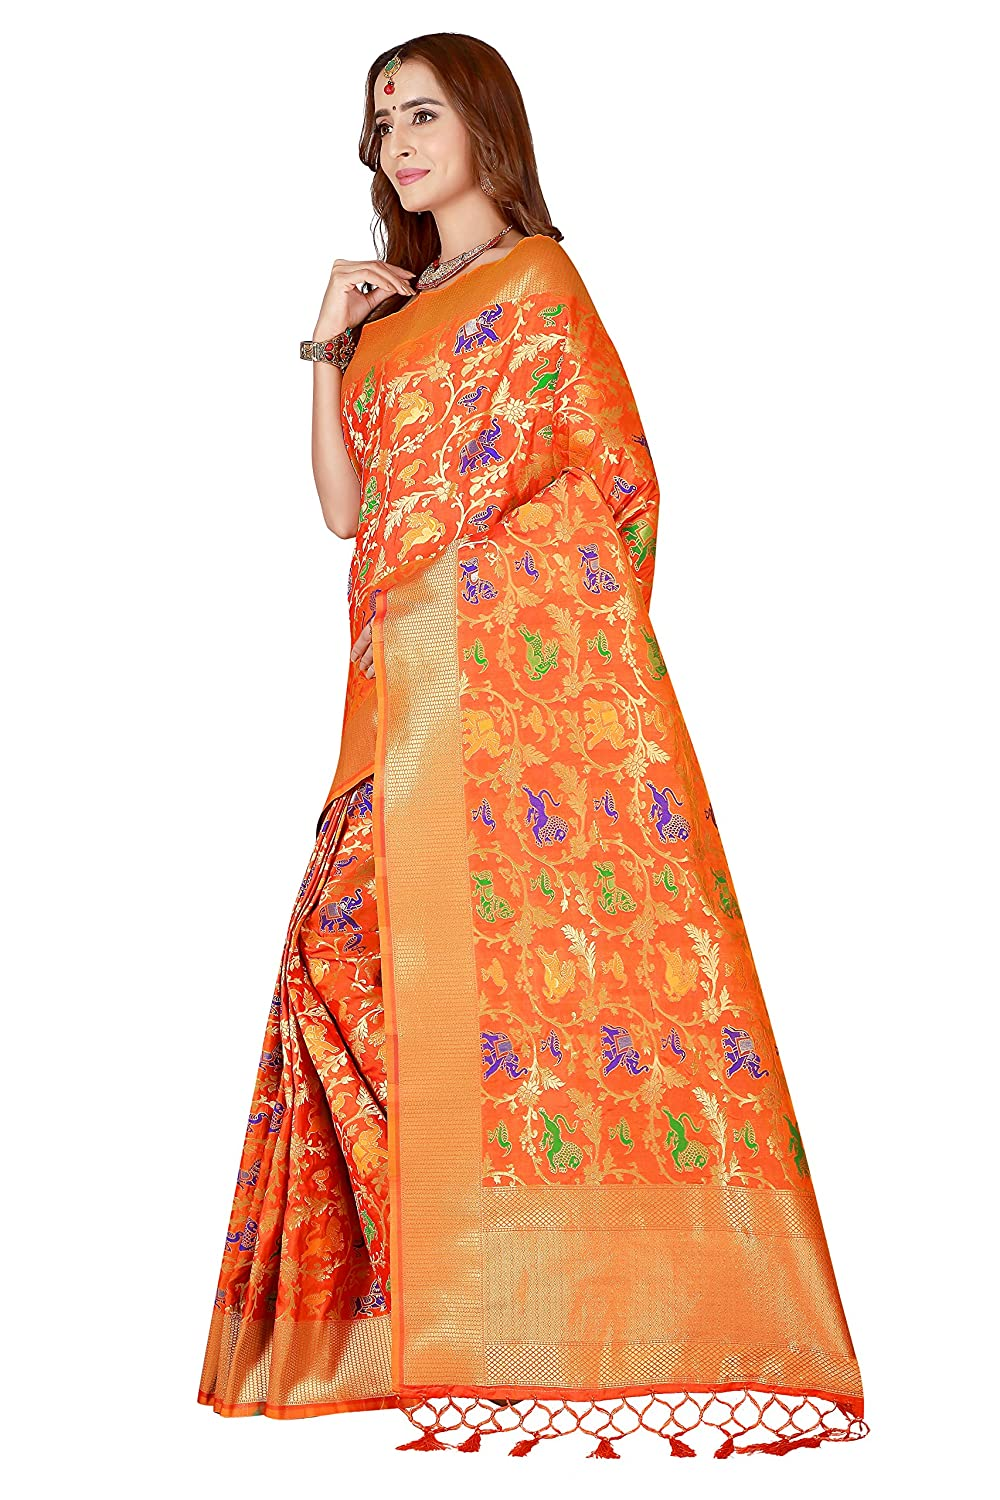 230f3411fc Belomoda Dark Orange Color Art Silk Fabric Weaving Wedding Fancy Saree For  Women with Heavy Blouse,Reach Pallu Reach Concept: Amazon.in: Clothing & ...